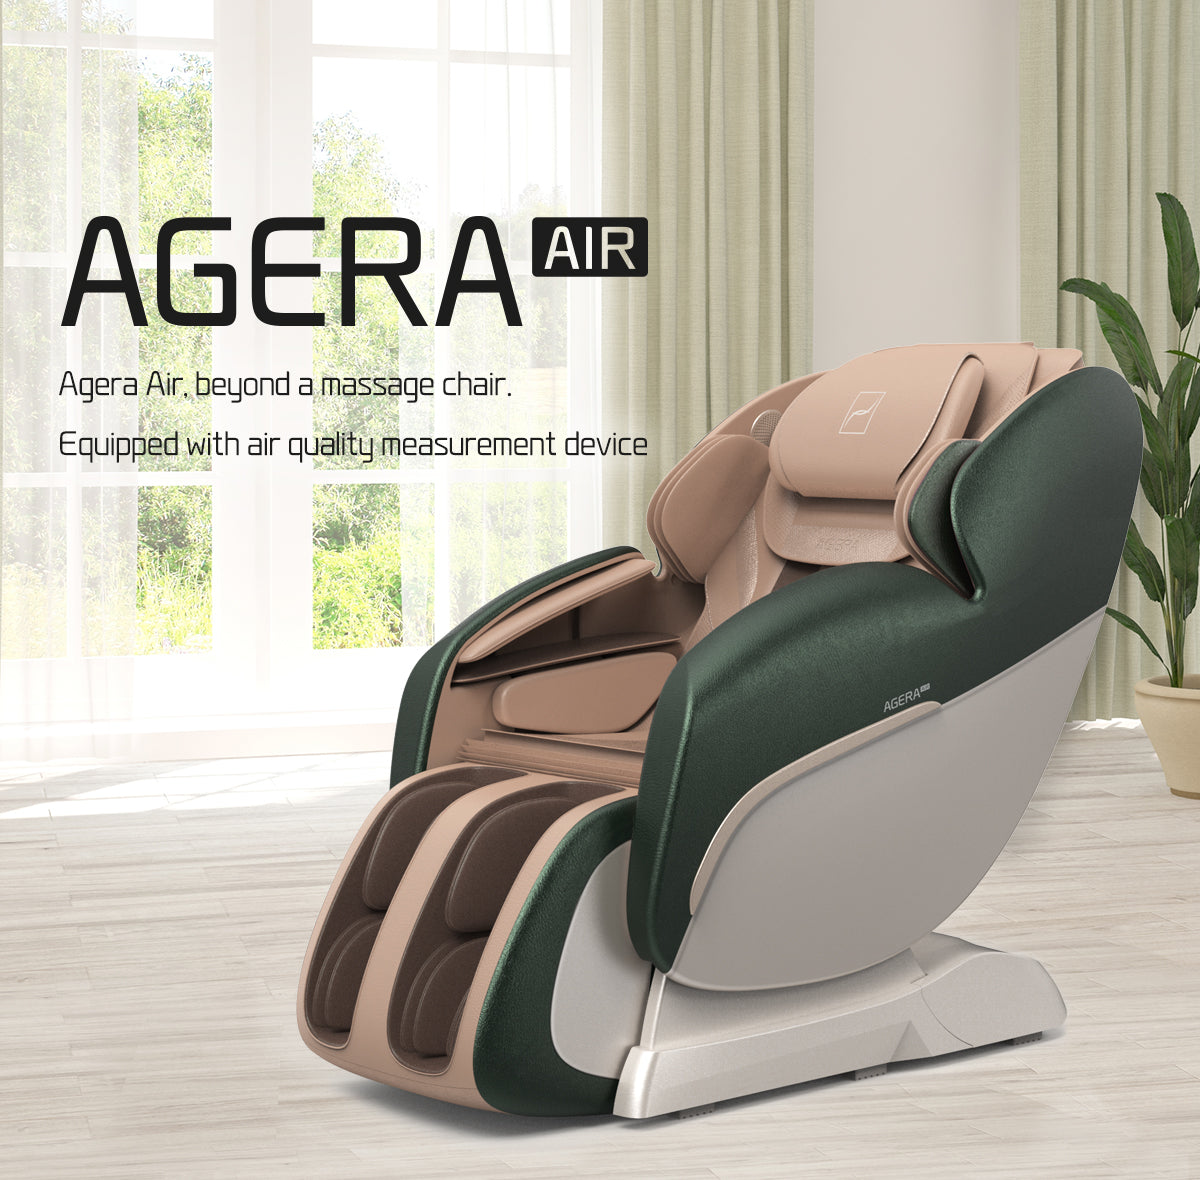 Agera is in the room